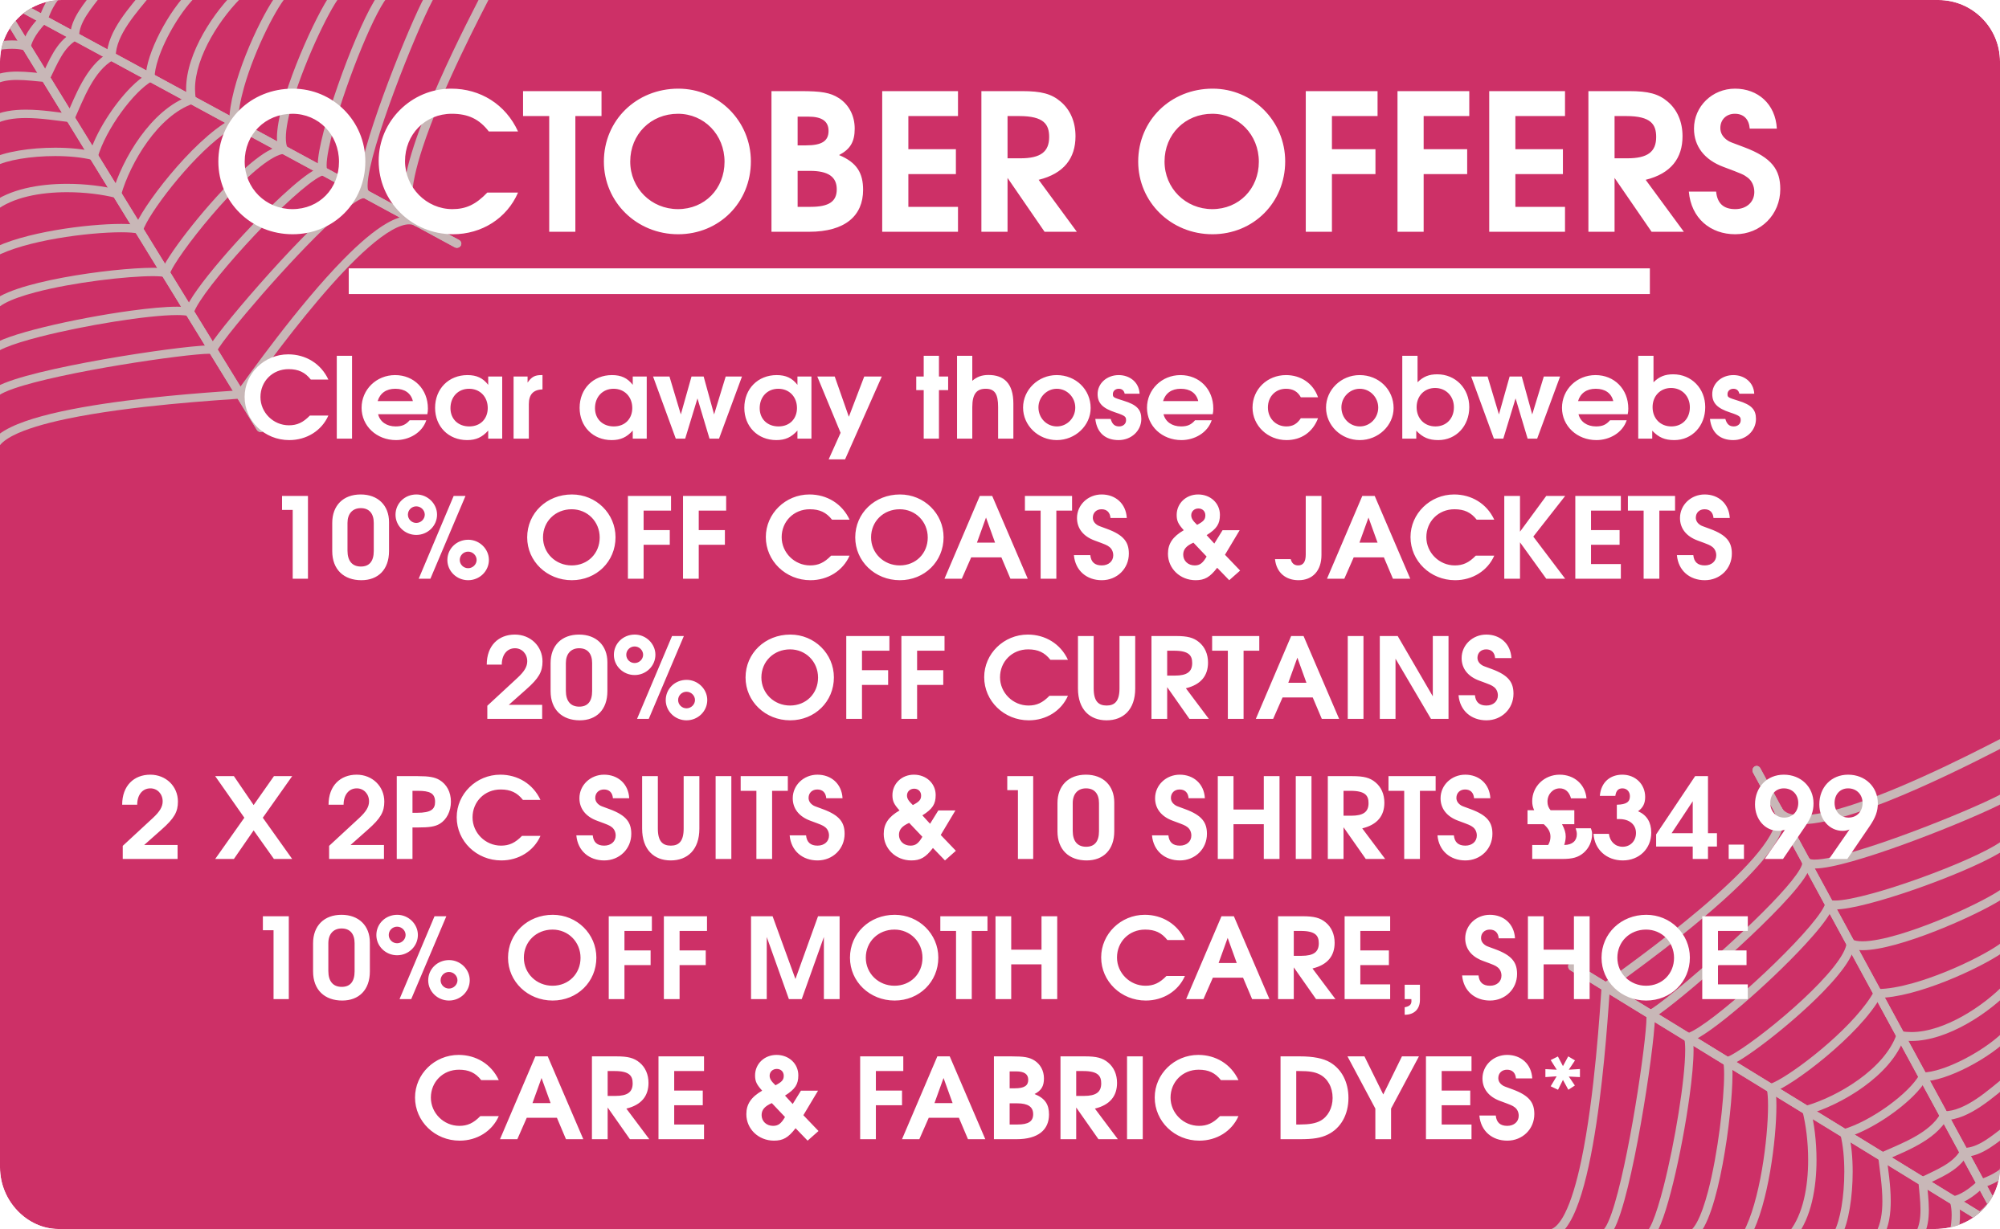 October Offers Offers- Pearls Drycleaners, Acton